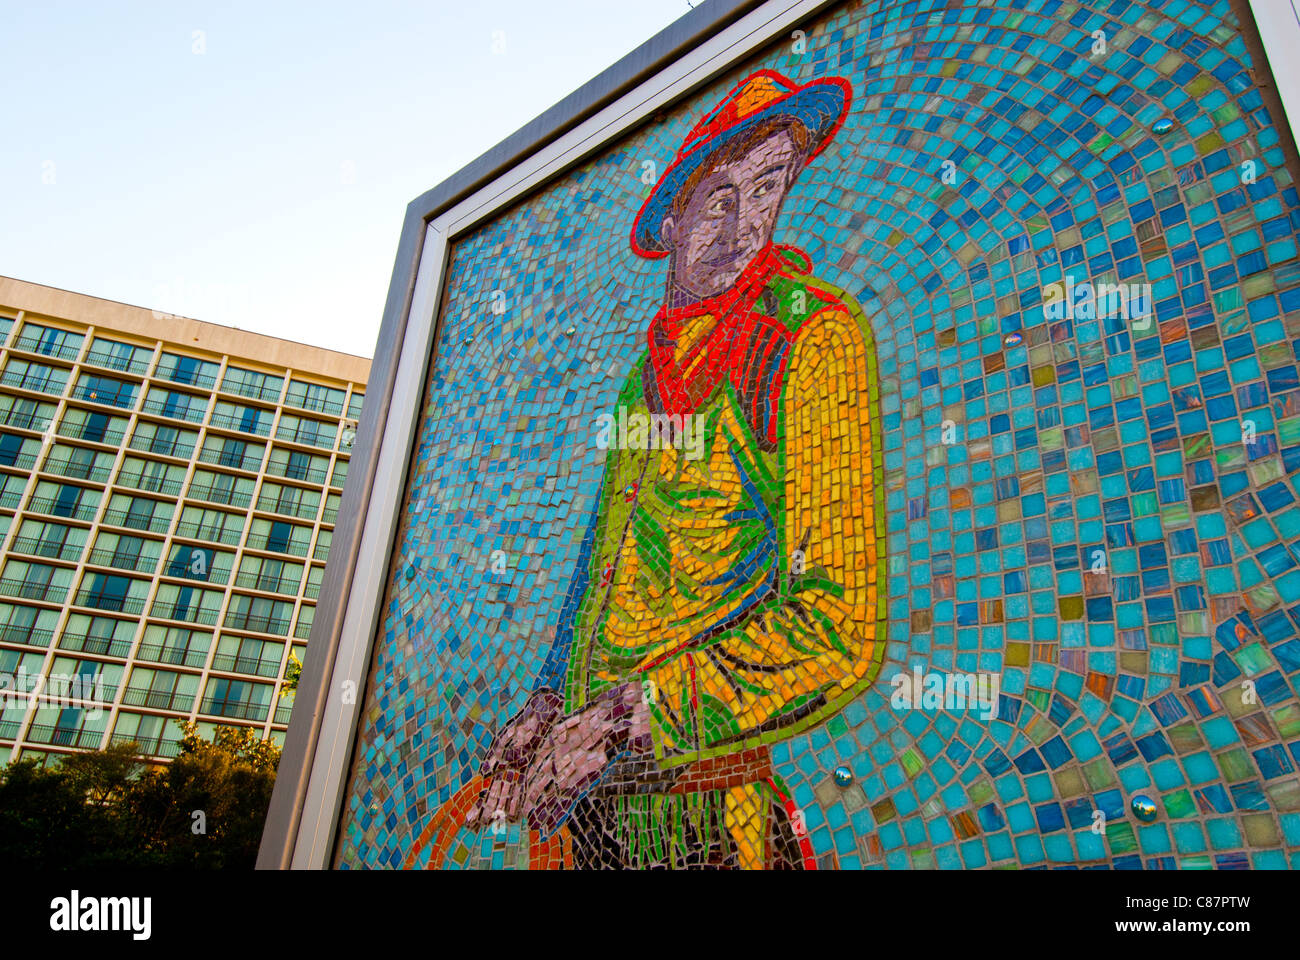 'Will', a 4-by-7 ft mosaic mural of Will Rogers by Linda Allen in Williams Center Green in downtown Tulsa, - Stock Image